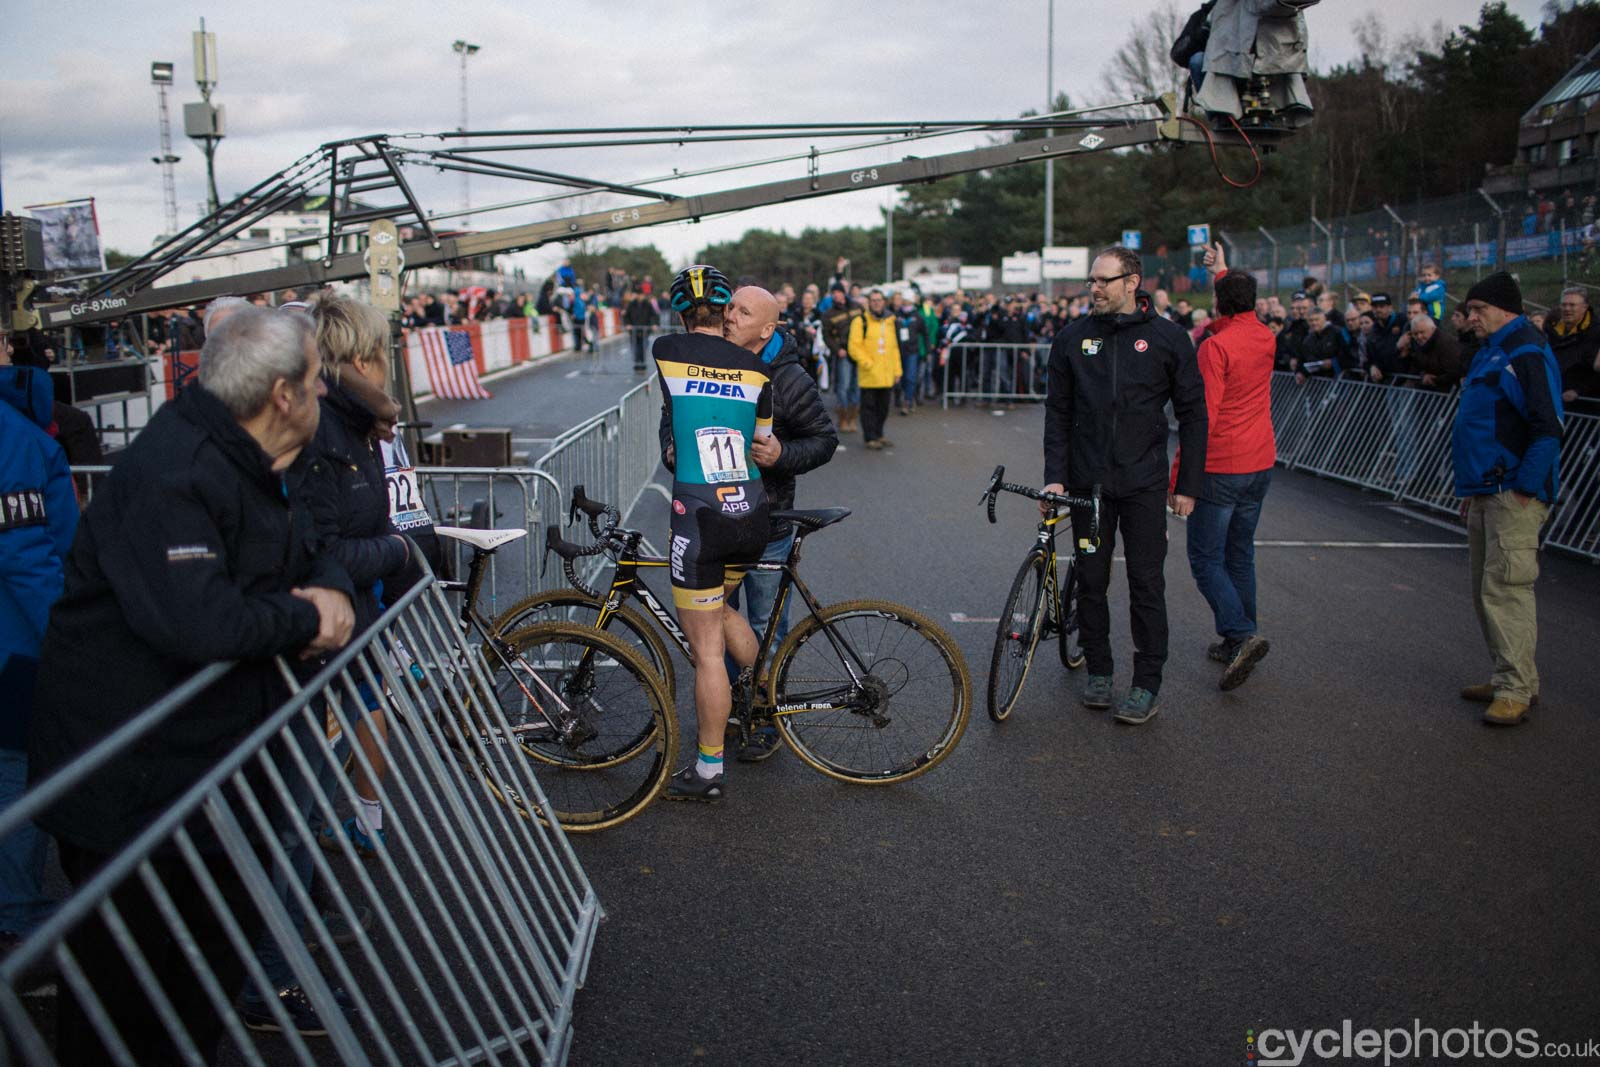 2015-cyclephotos-cyclocross-zolder-142717